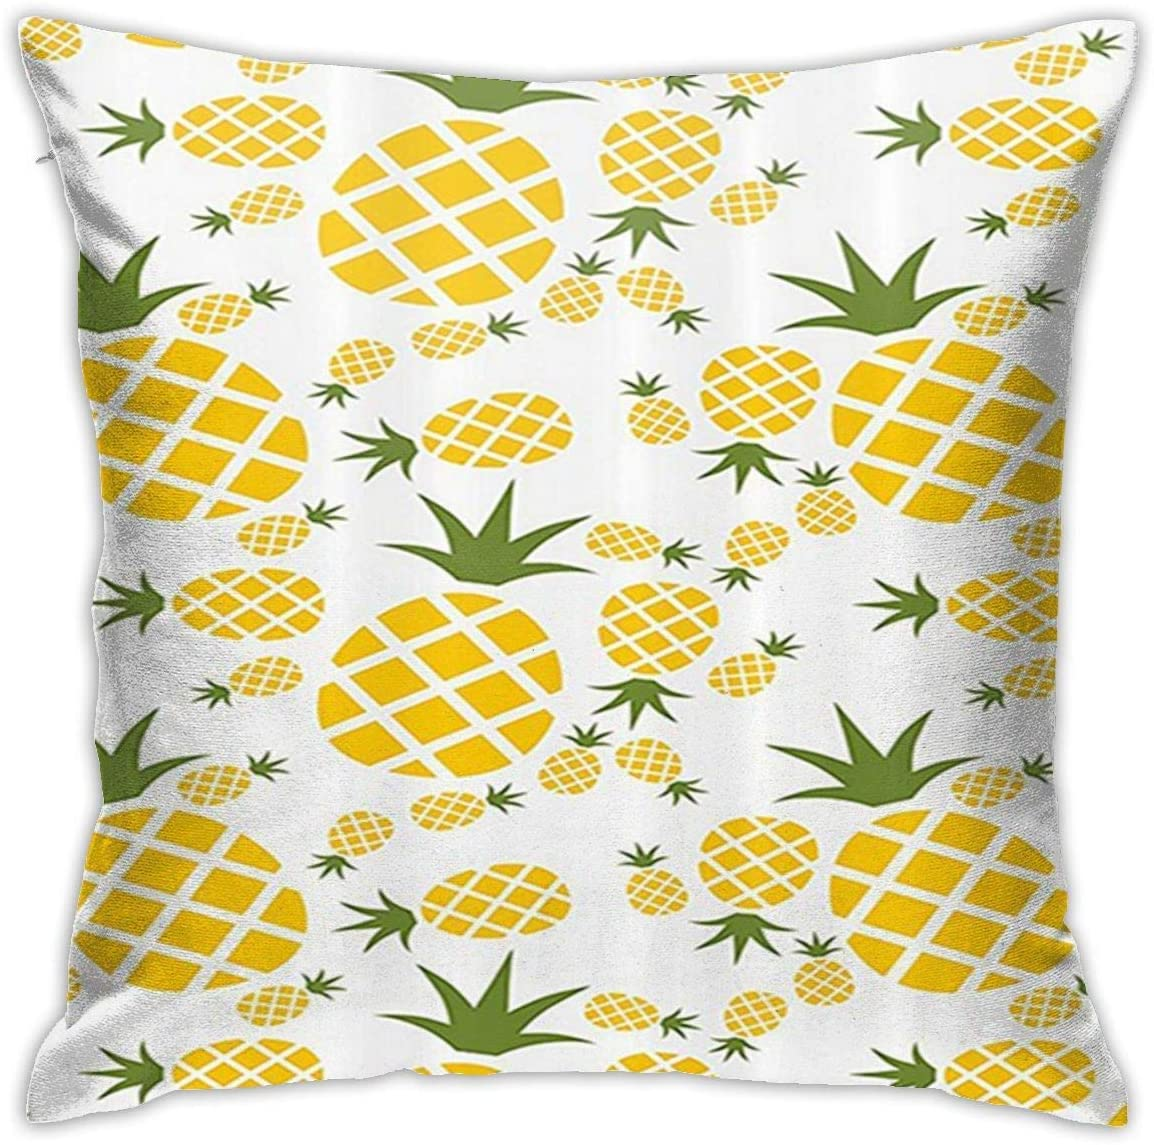 antfeagor Pineapple Pictogram Decorative Pillow Covers Decorative 18x18 in Daily Sofa Throw Pillow Case Cushion Covers Zippered Pillowcase